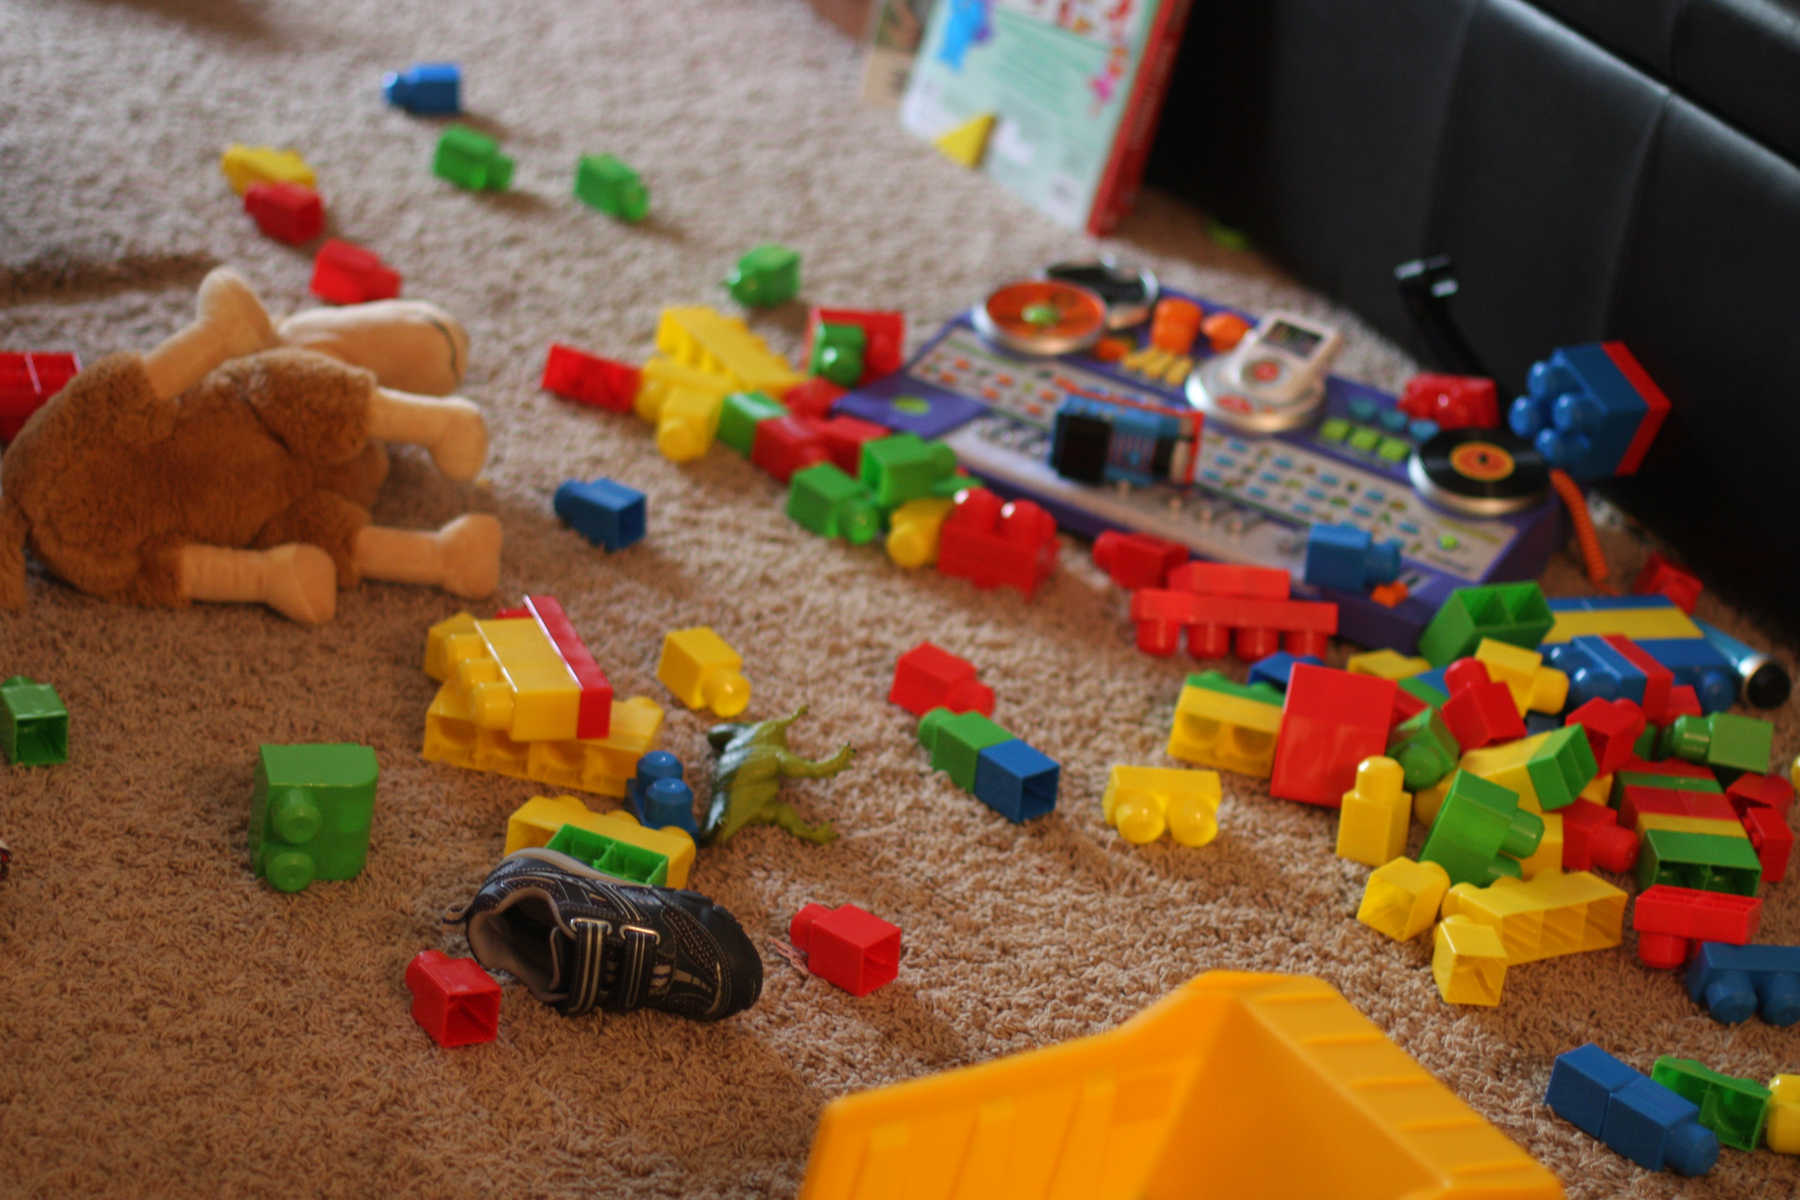 Image result for scattered toys images